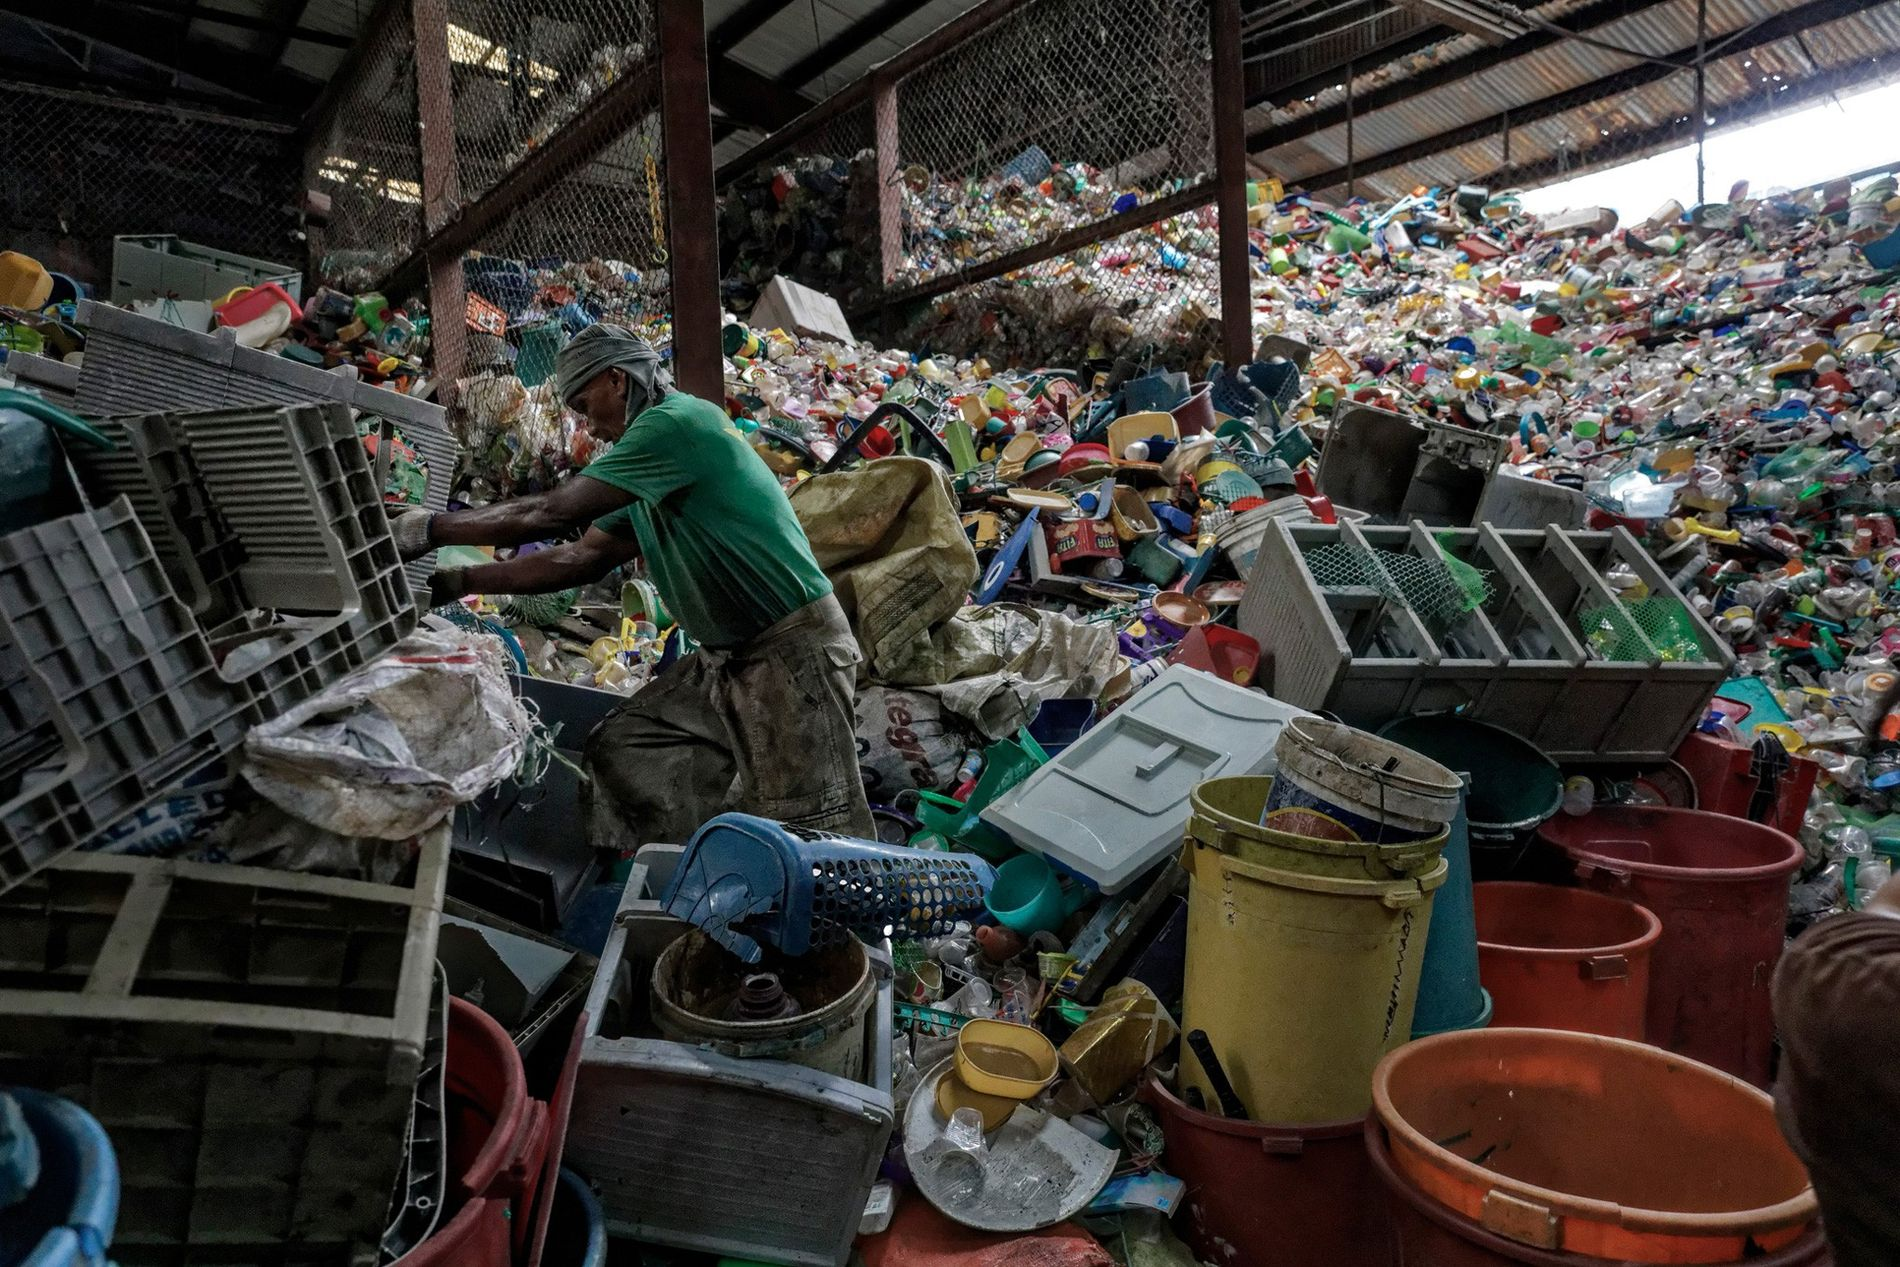 The Philippines is the third largest contributor to ocean plastics in the world. Here, garbage is ...